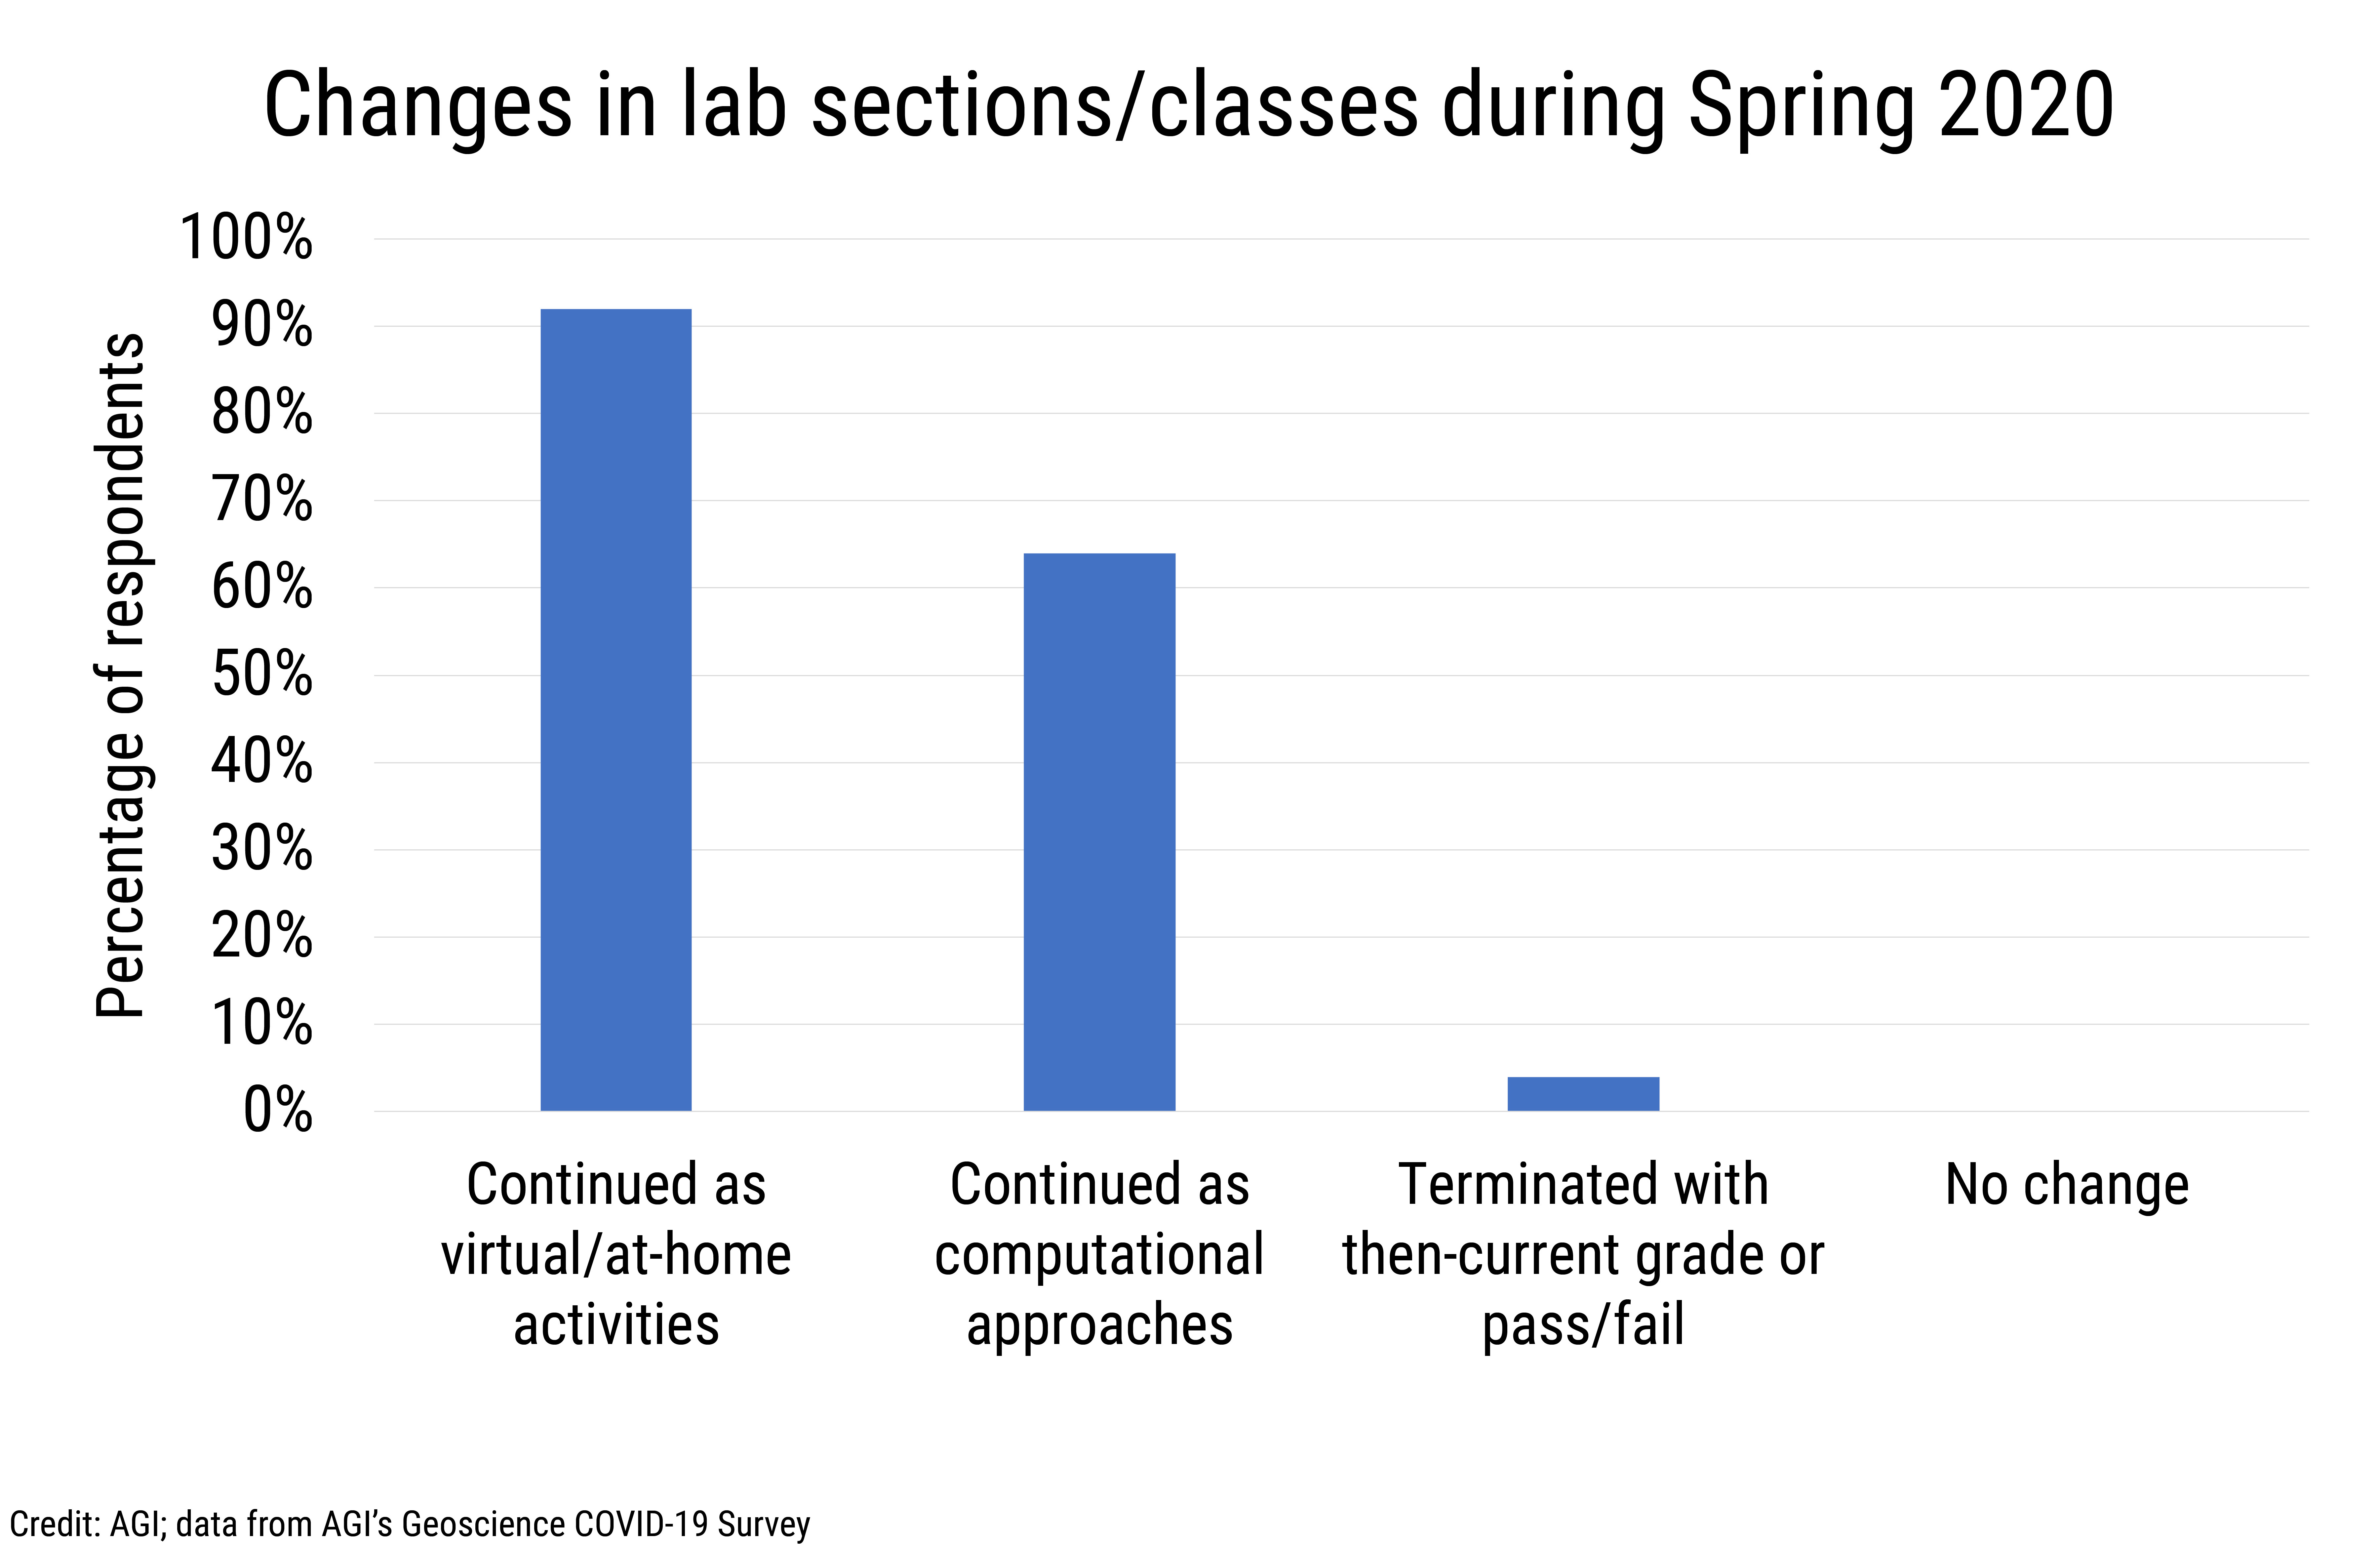 Data Brief 2020-006 chart 01: Changes in lab sections/classes during Spring 2020 (credit: AGI)